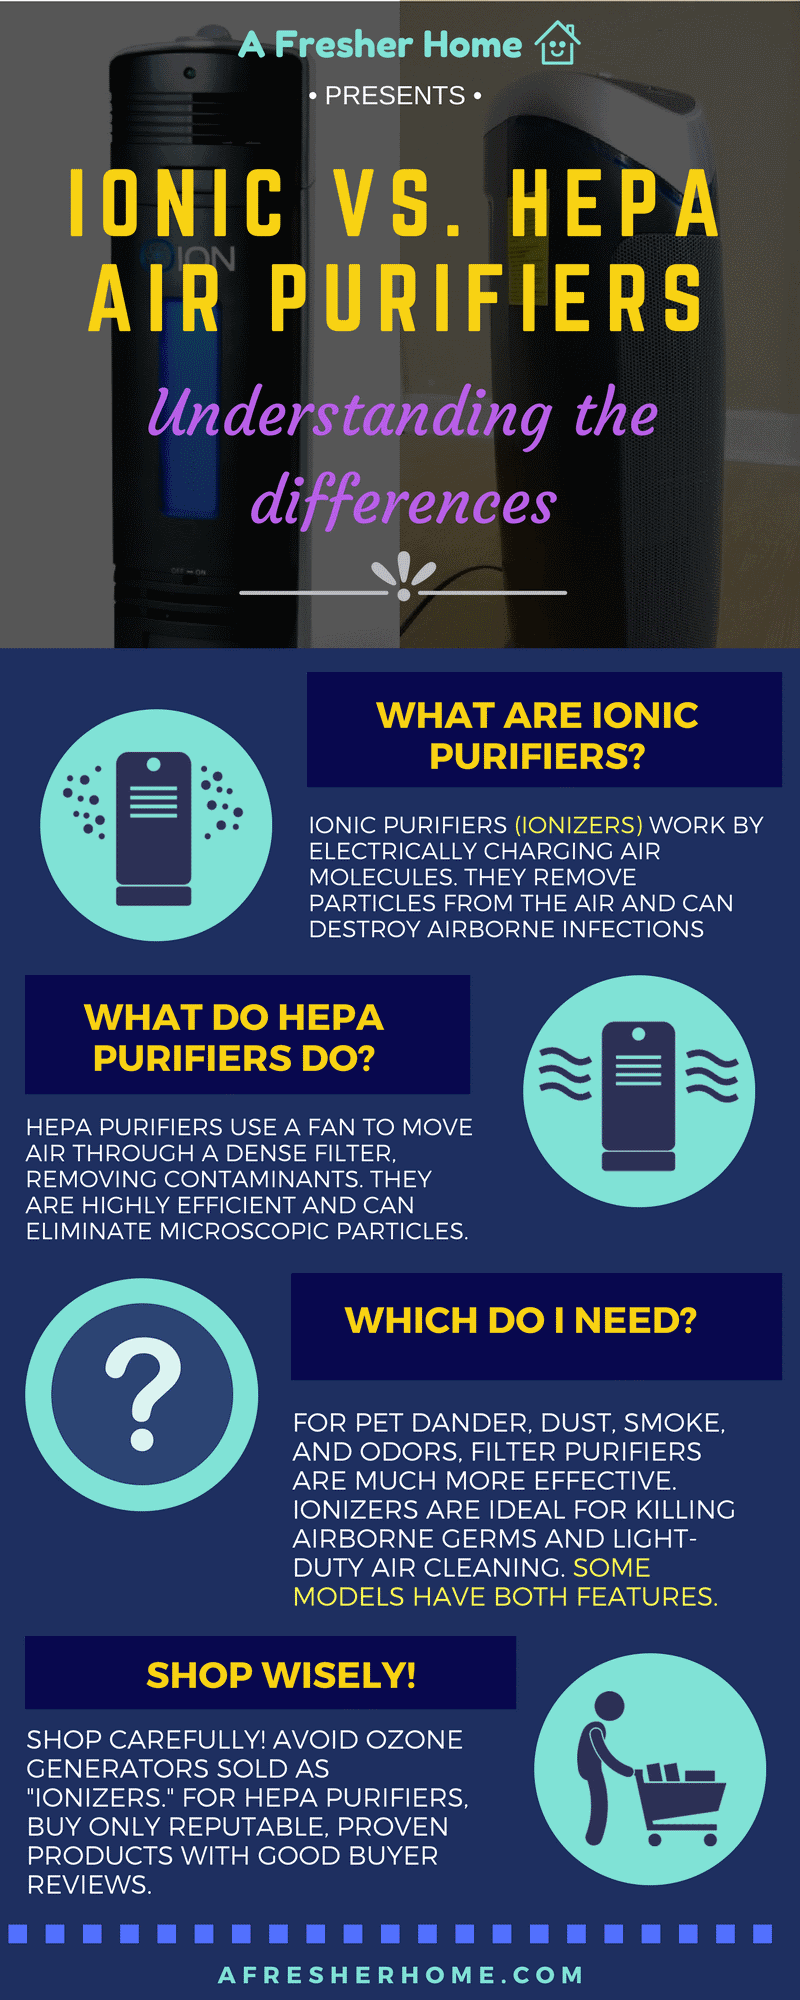 Ionic air purifier vs. HEPA infographic diagram/image